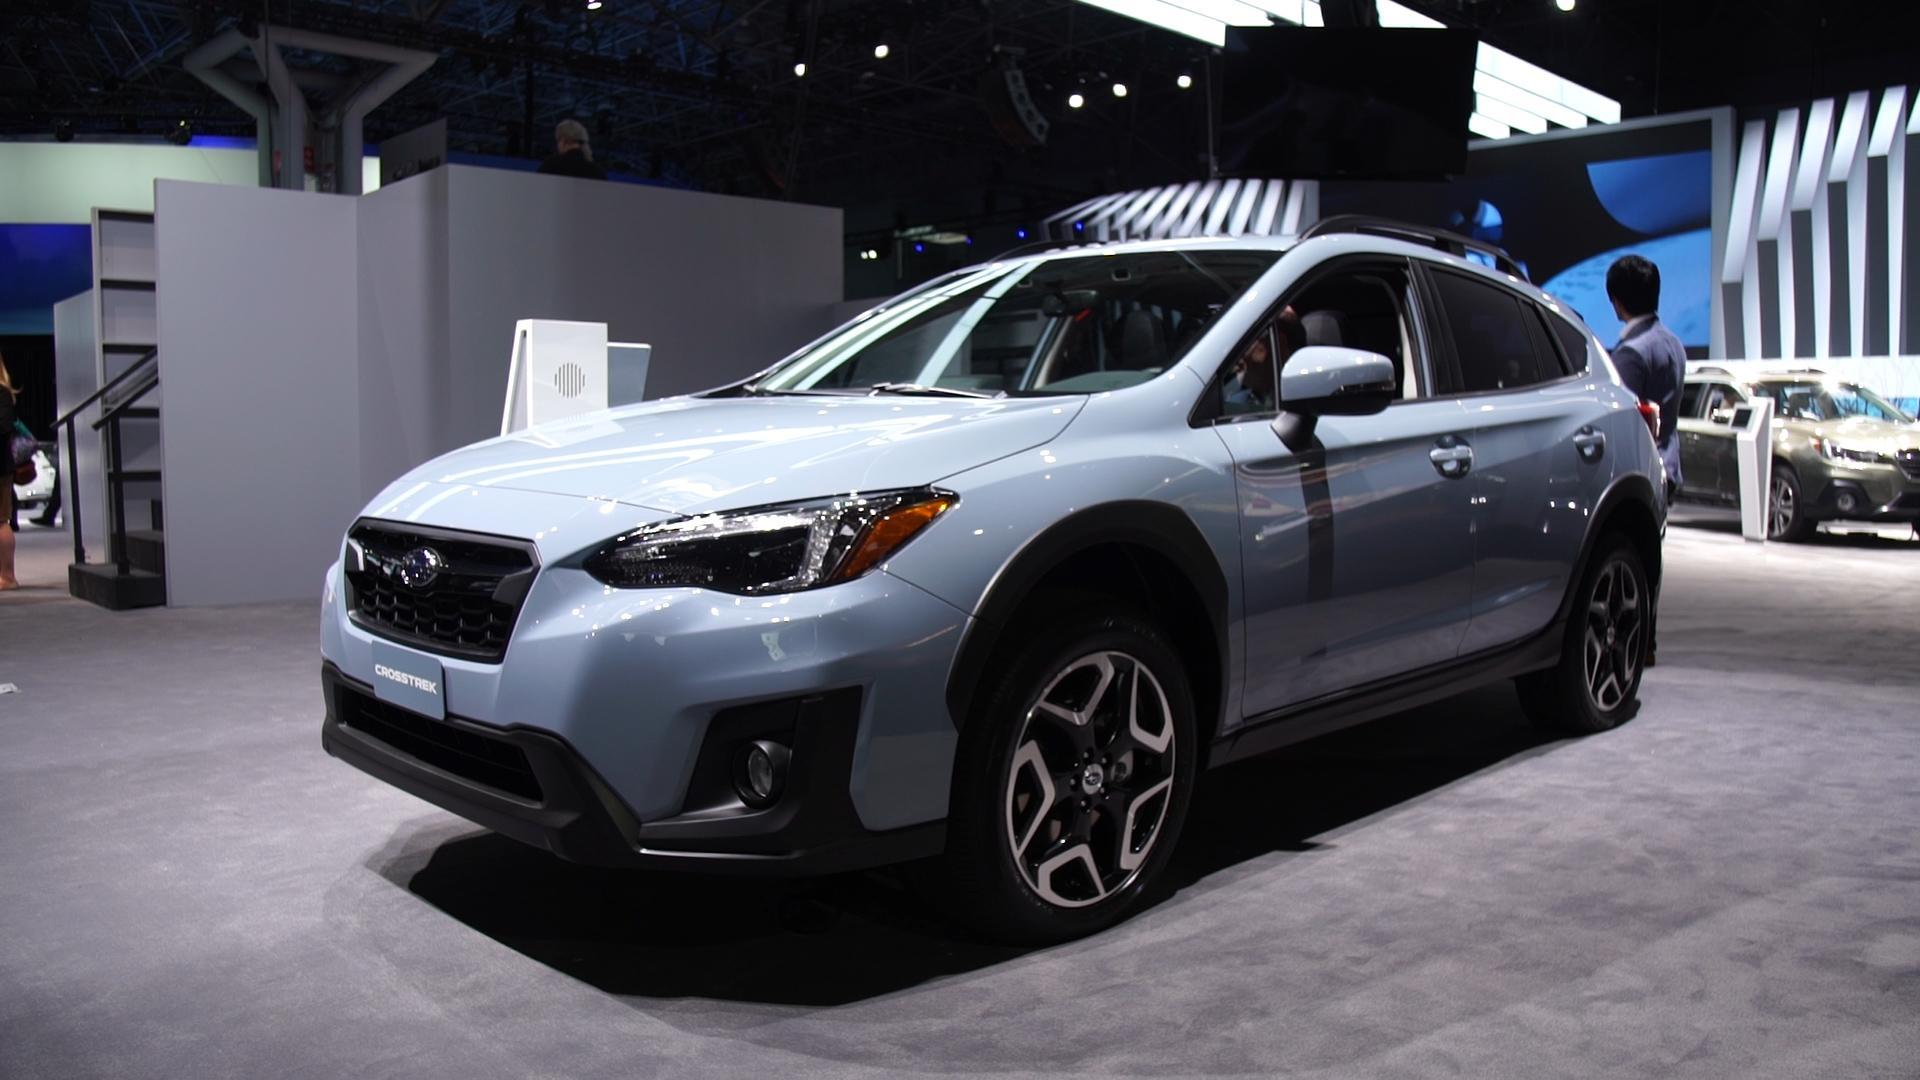 2018 subaru crosstrek looks to gain an edge in the small suv field. Black Bedroom Furniture Sets. Home Design Ideas